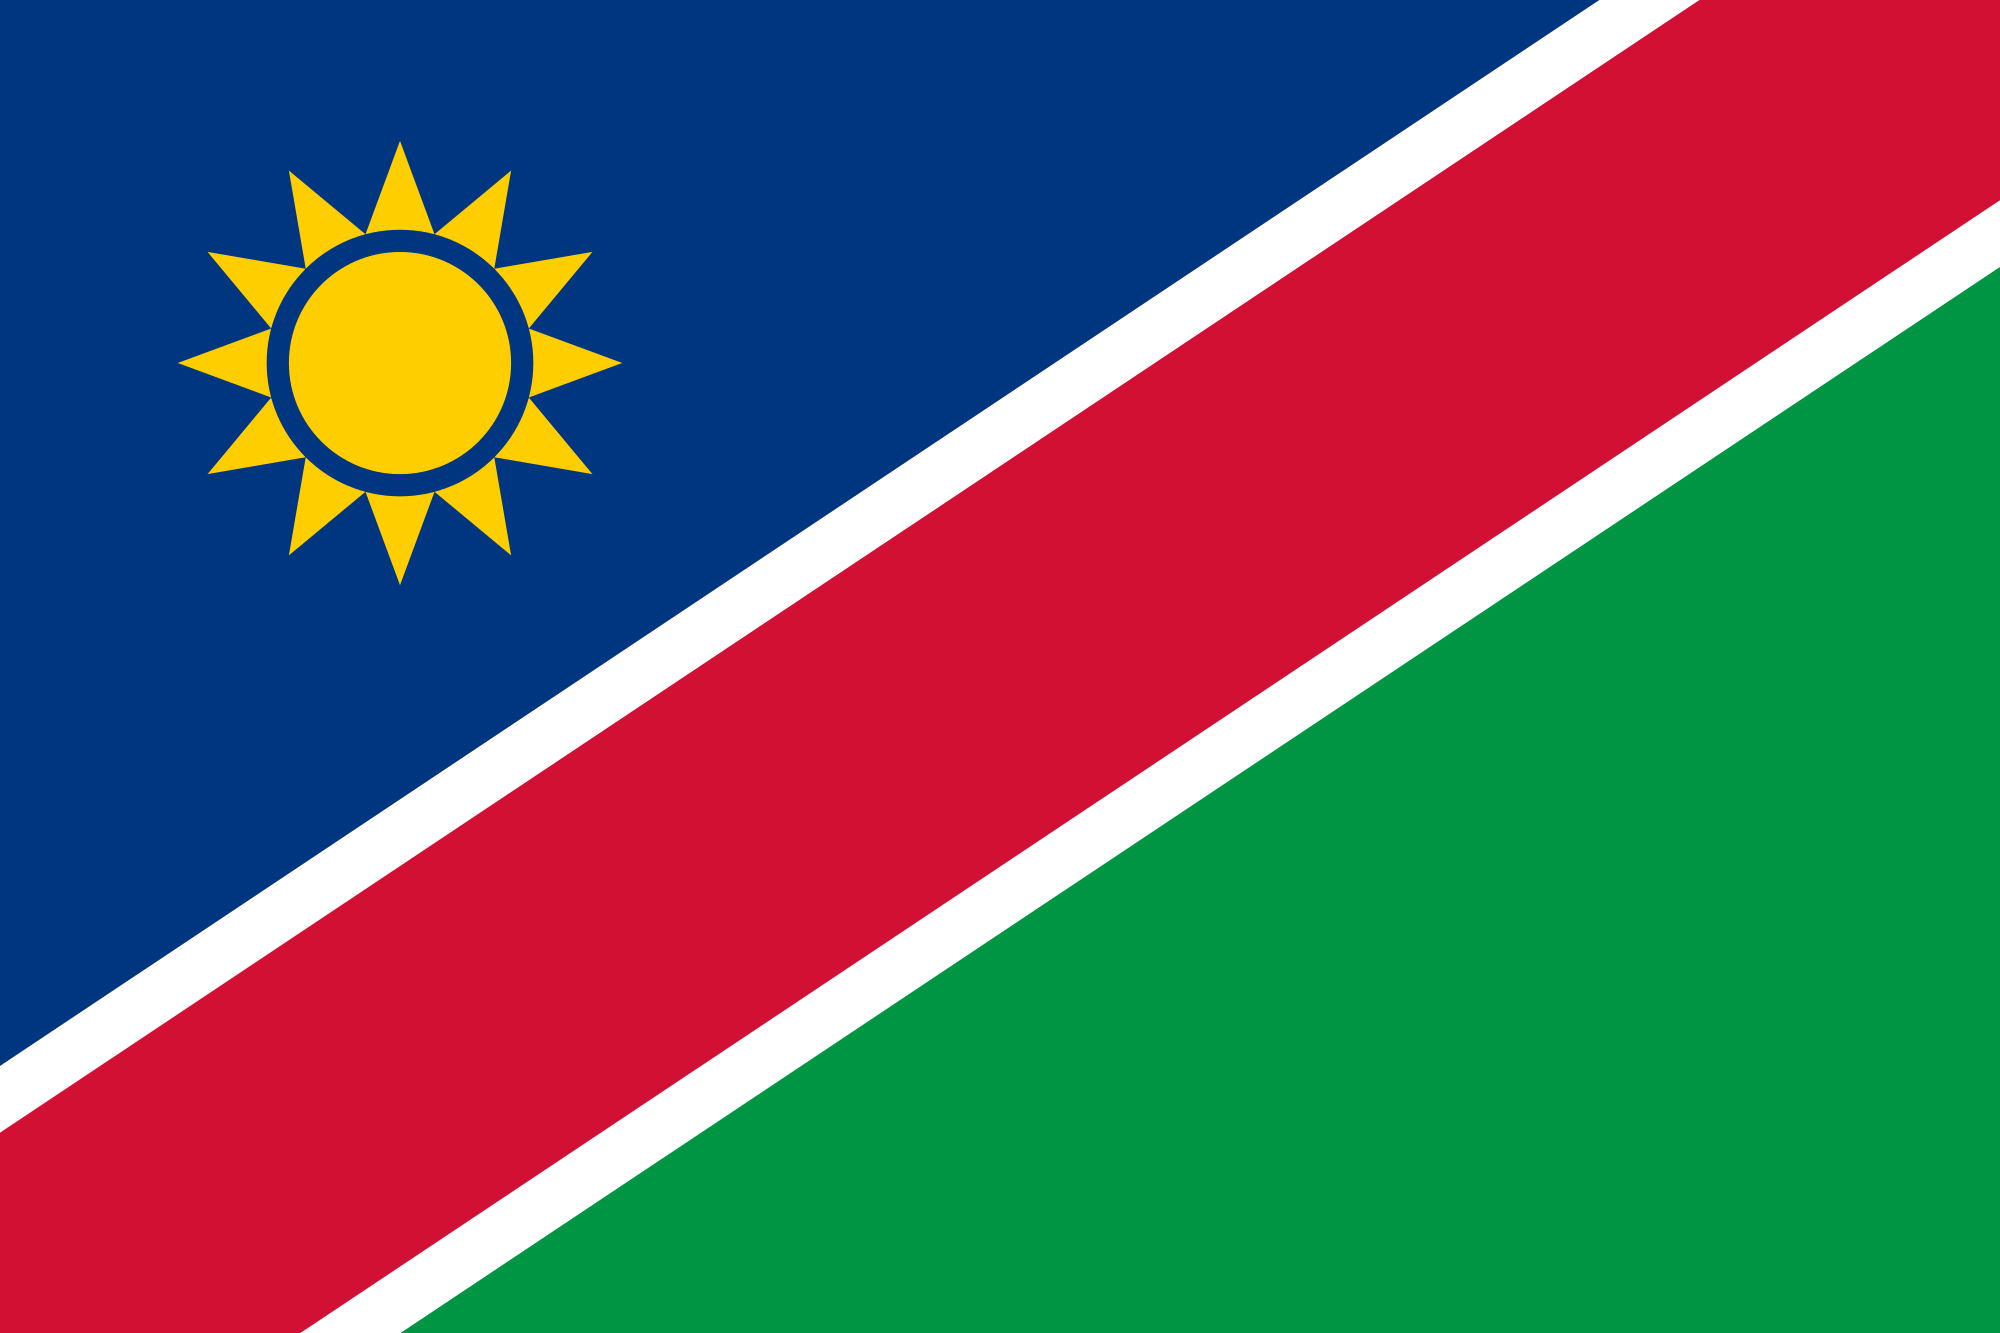 namibian flag Google Search | Namibia | Pinterest | Flags